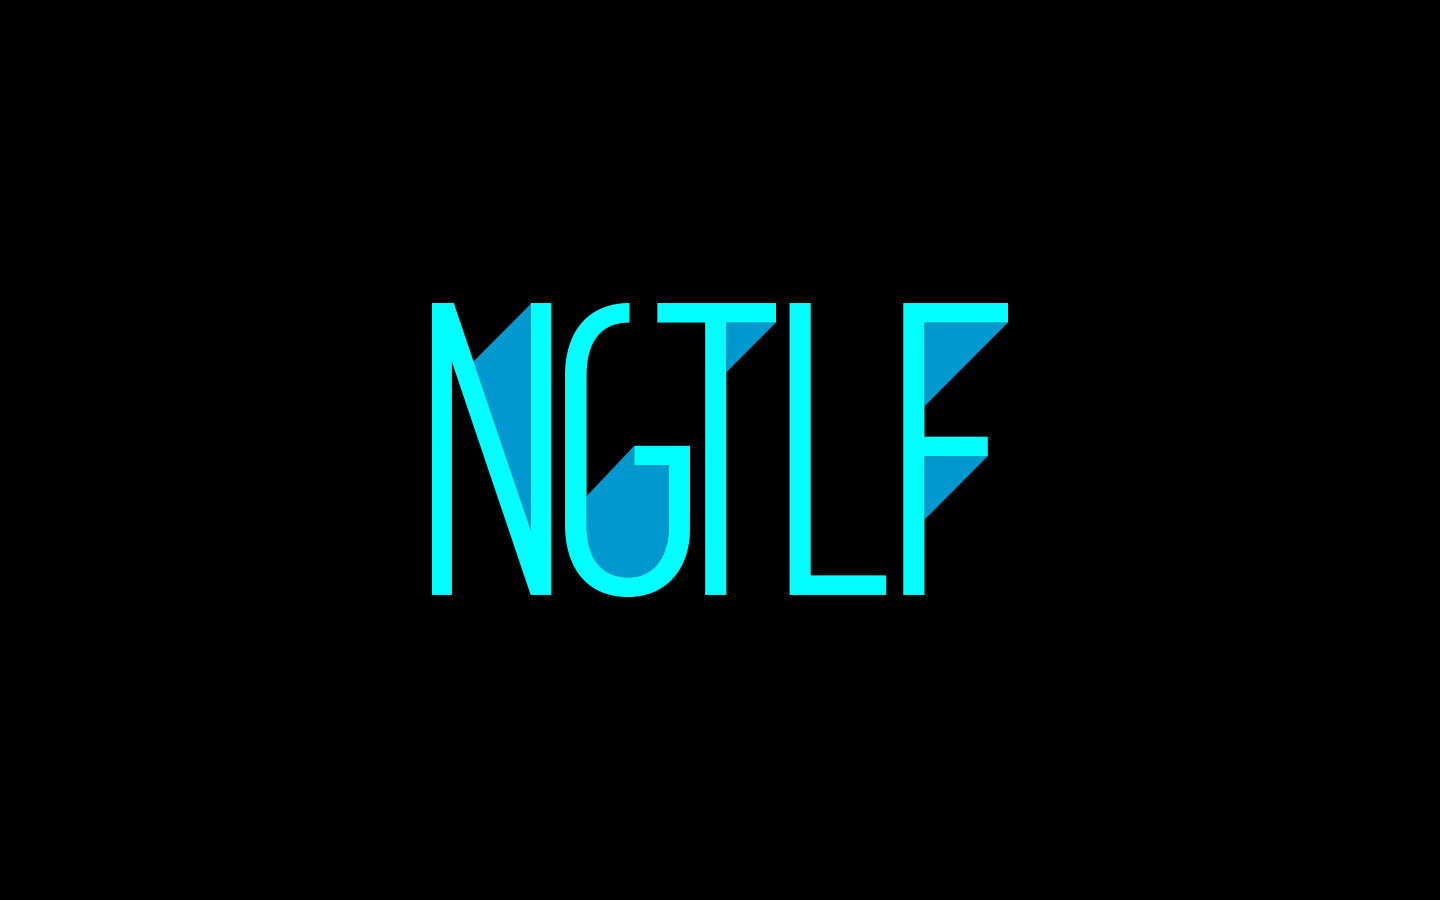 NGTLF_2